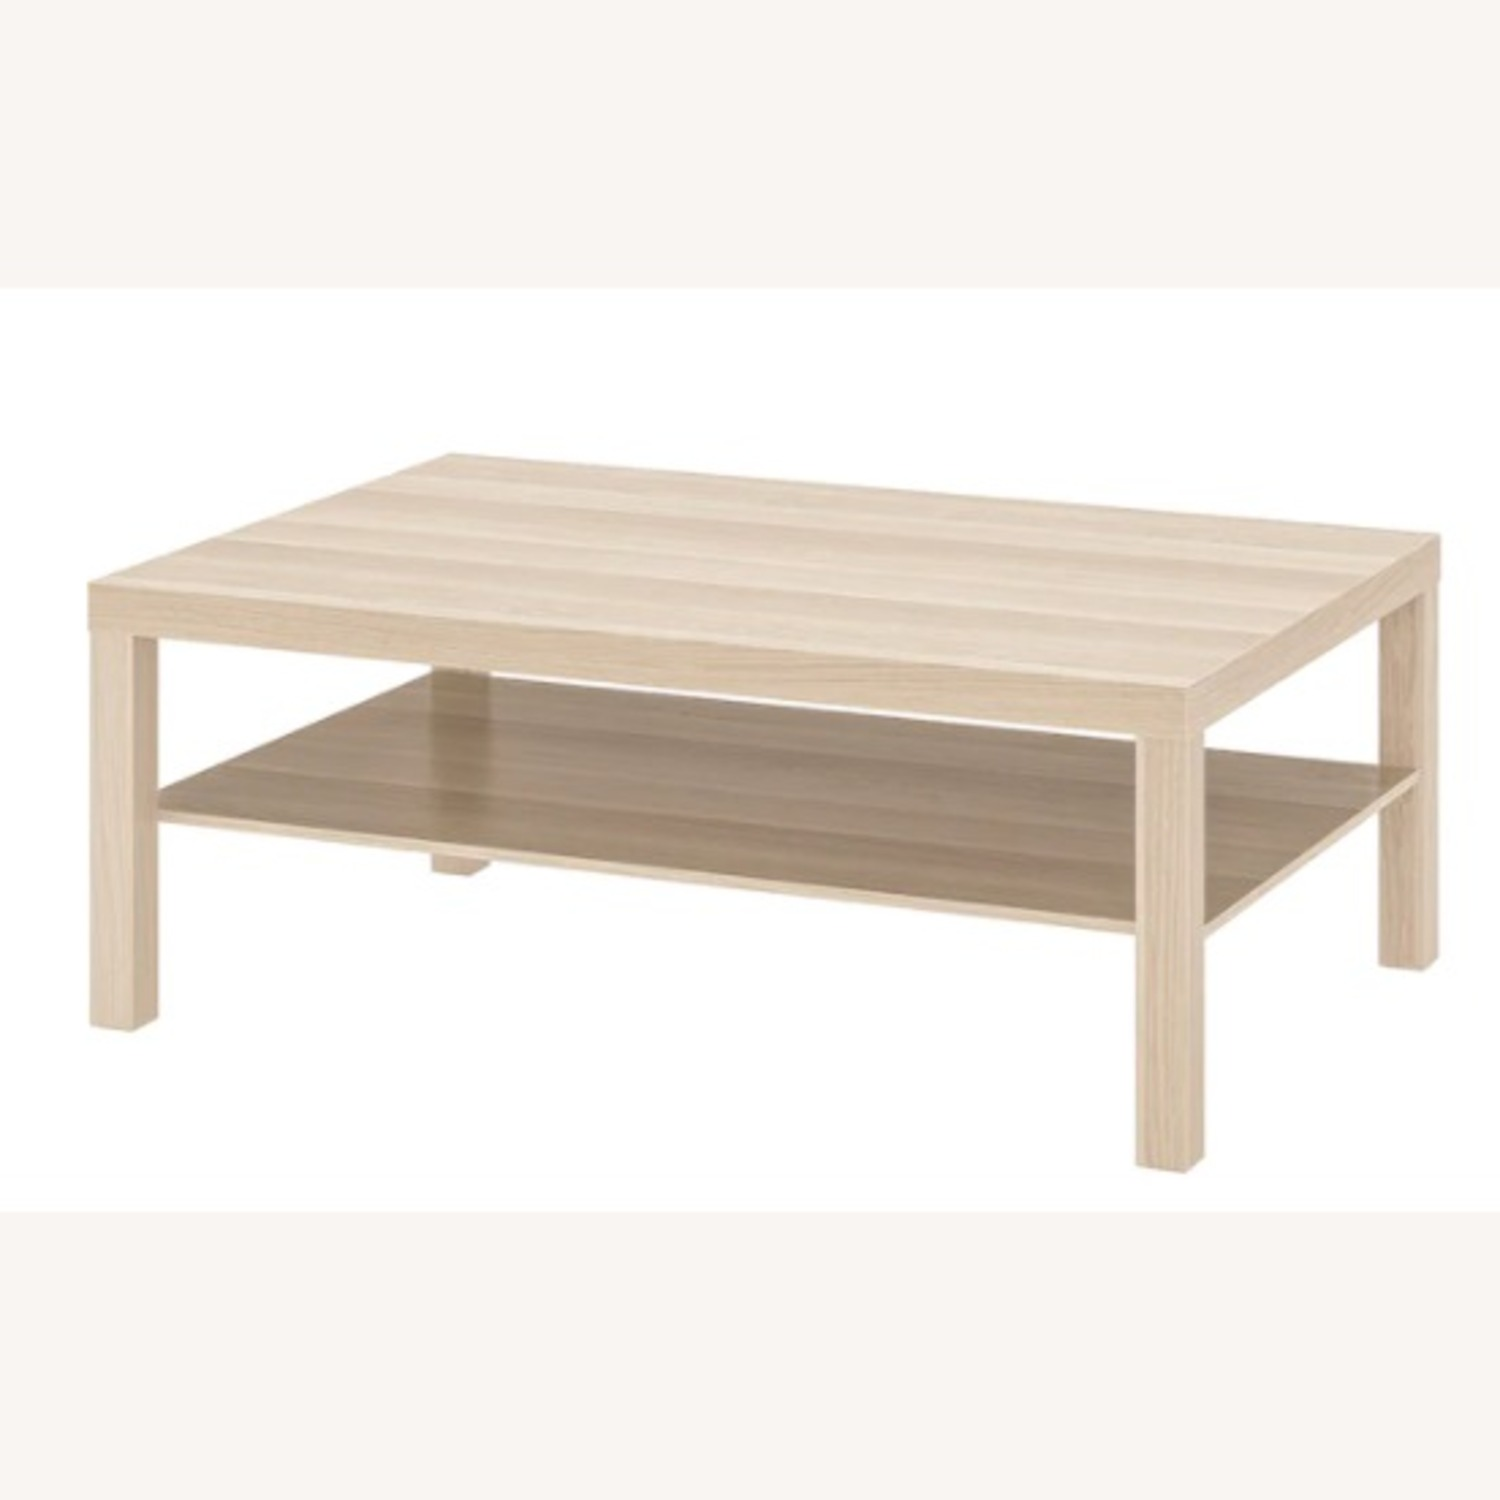 IKEA White Stained Oak Effect Lack Coffee Table - image-3